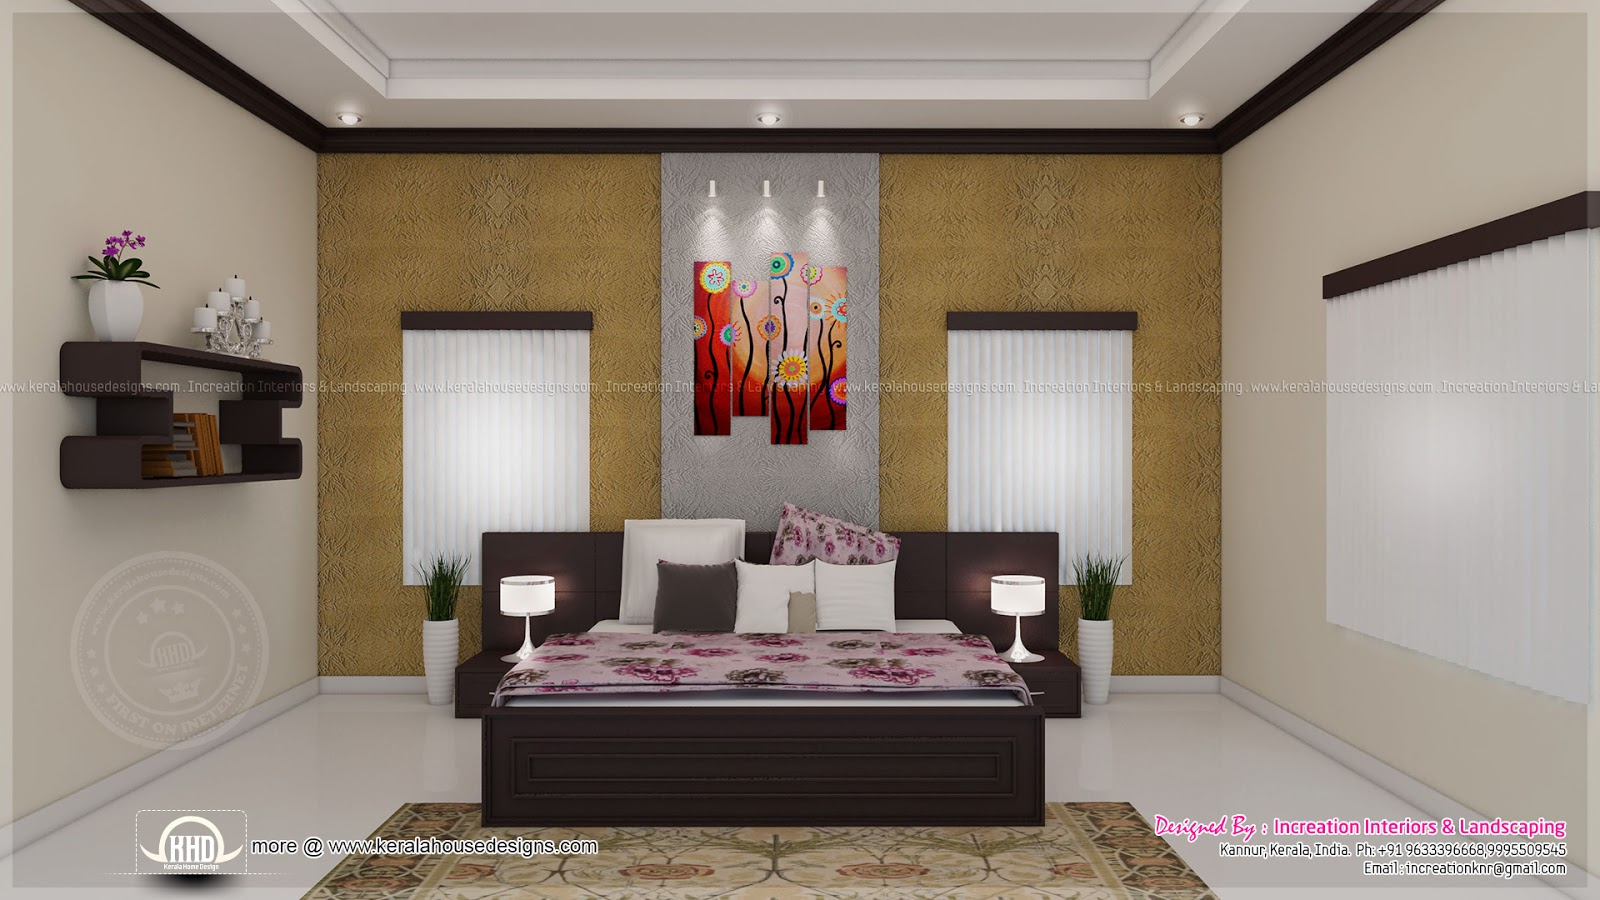 house interior ideas in 3d rendering kerala home design and floor plans. Black Bedroom Furniture Sets. Home Design Ideas